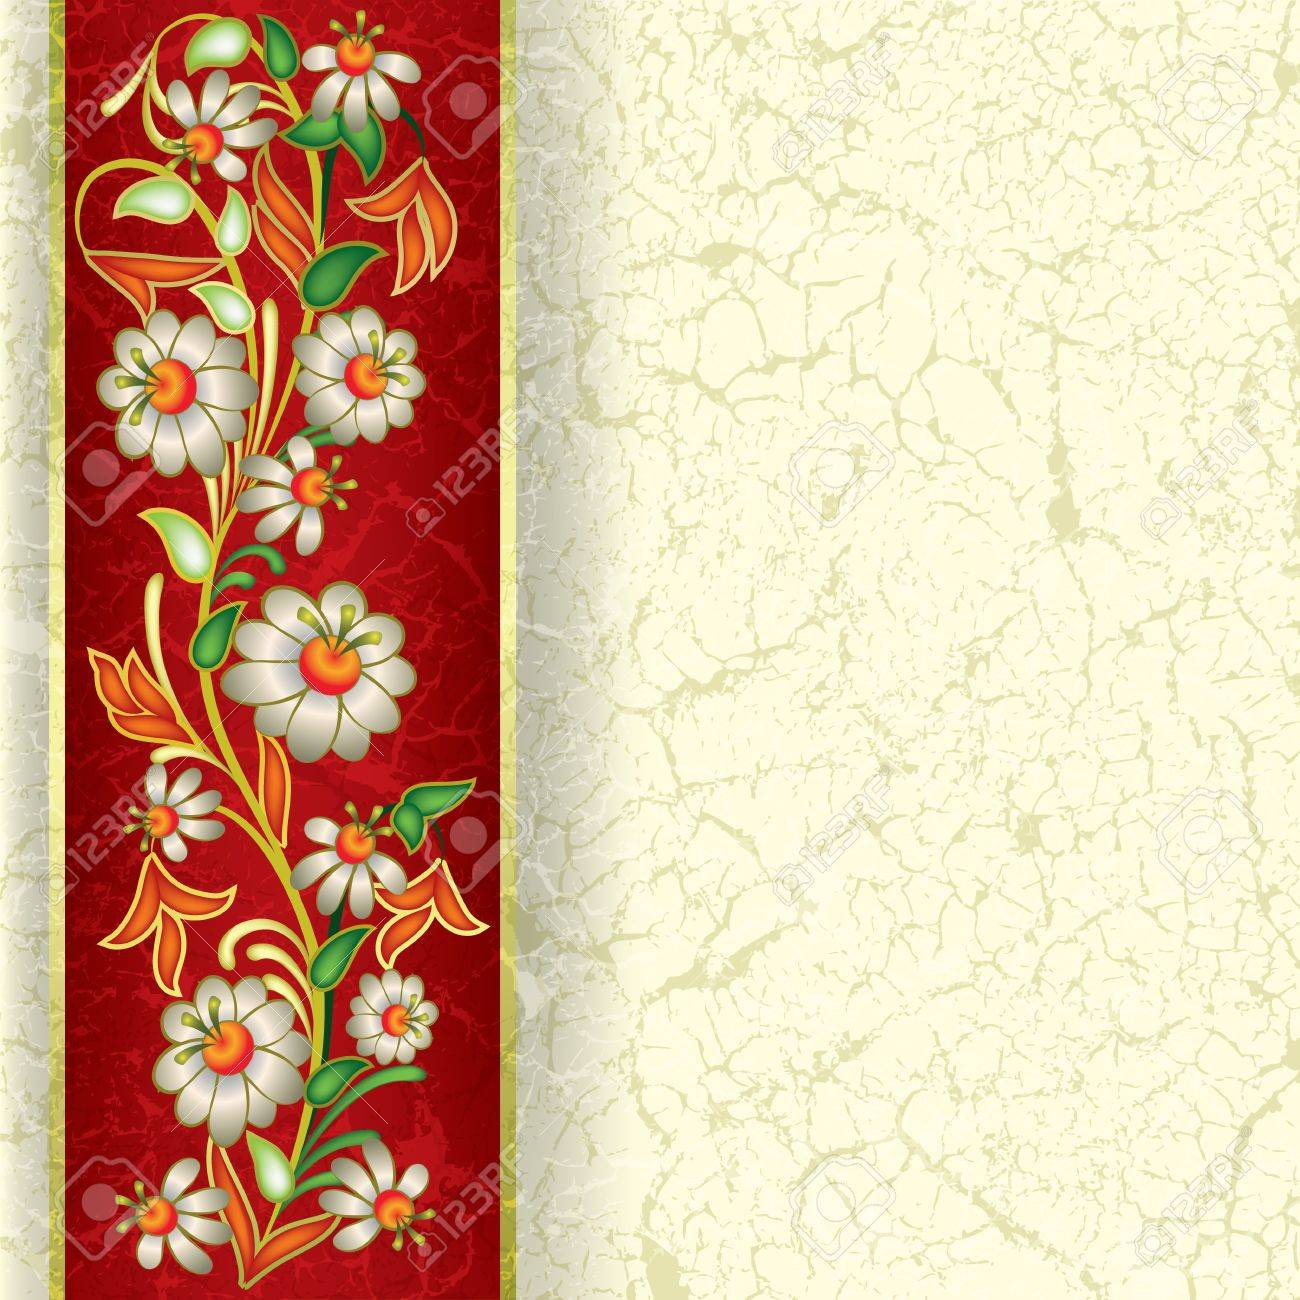 abstract grunge beige background with floral ornament on red Stock Vector - 9567189